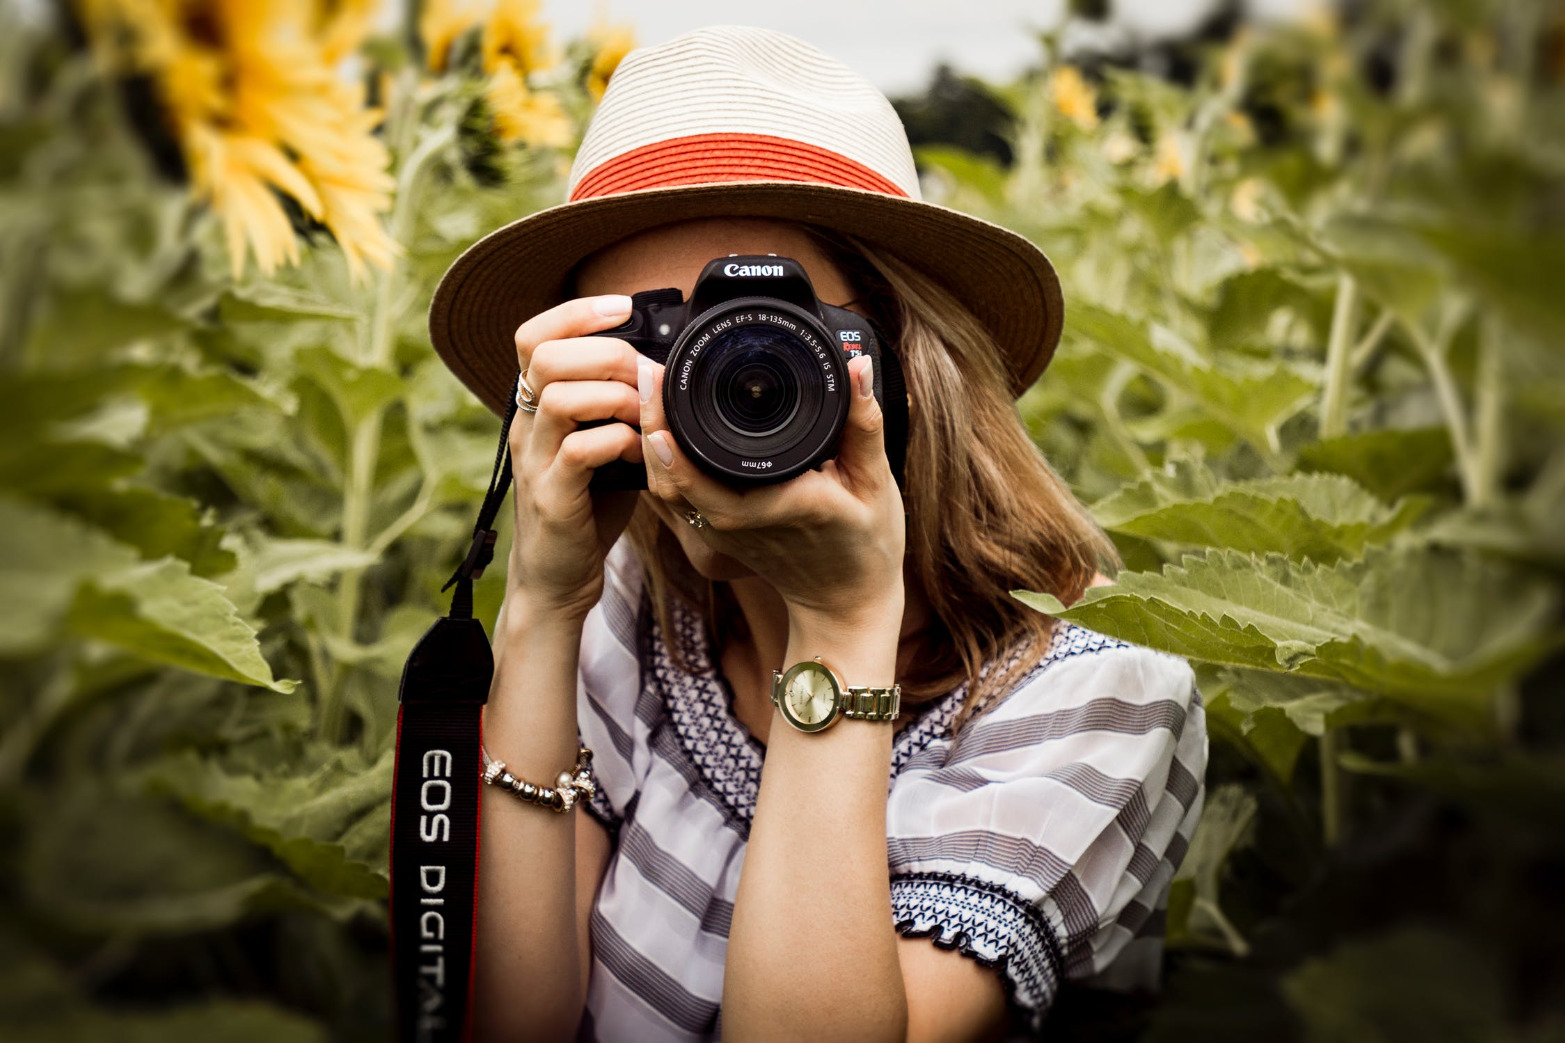 this is an image of a woman holding a dslr camera surrounded by plants